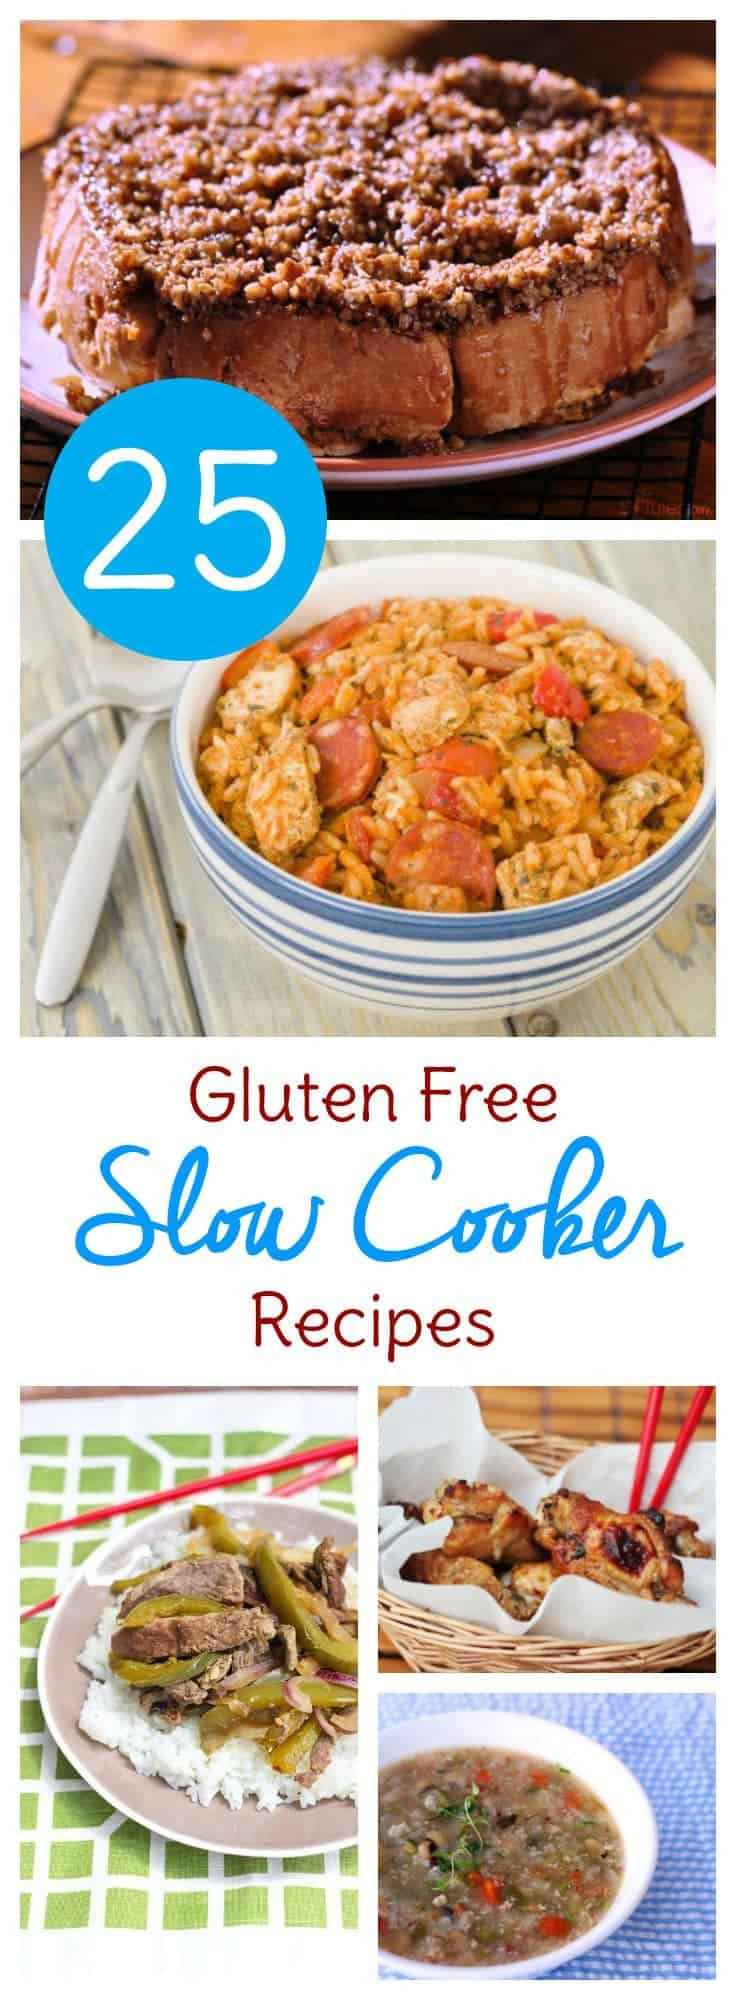 Gluten Free Dairy Free Crock Pot Recipes 25 Easy Gluten Free Crock Pot Recipes Sweet T Makes Three